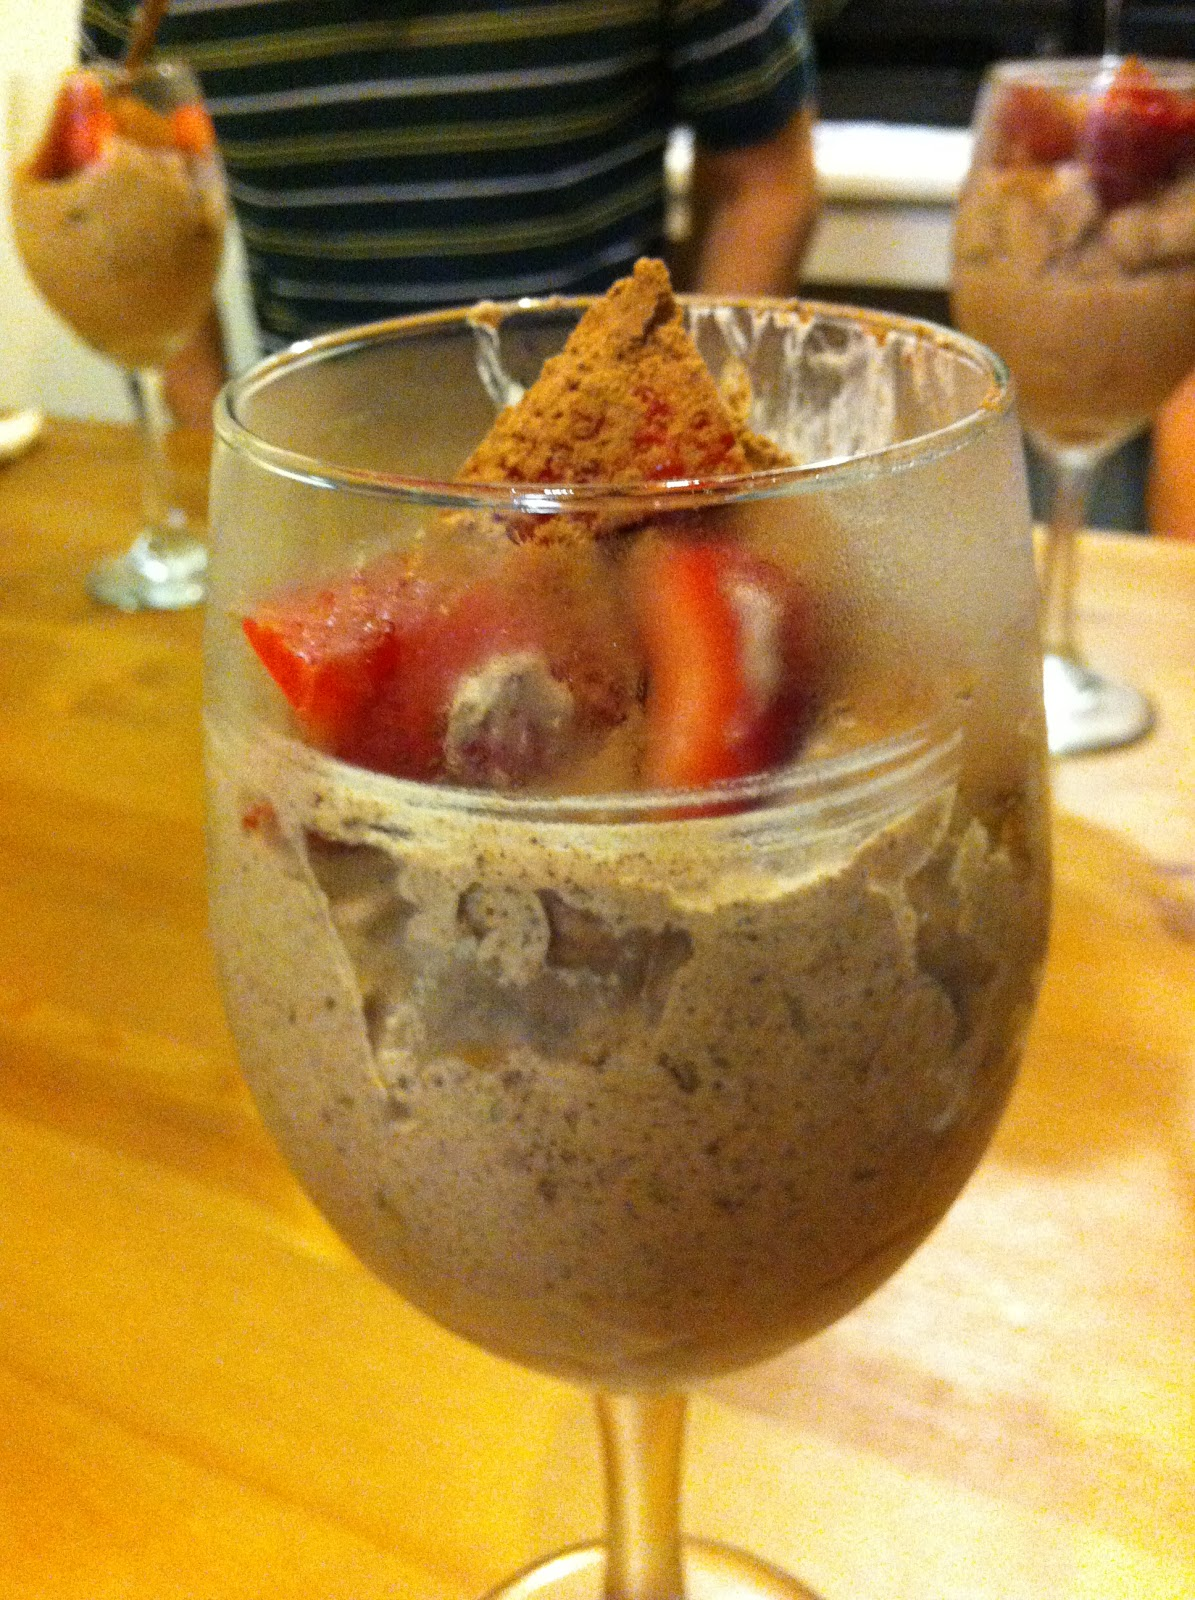 Statistical [R]ecipes: Dark Chocolate Mousse